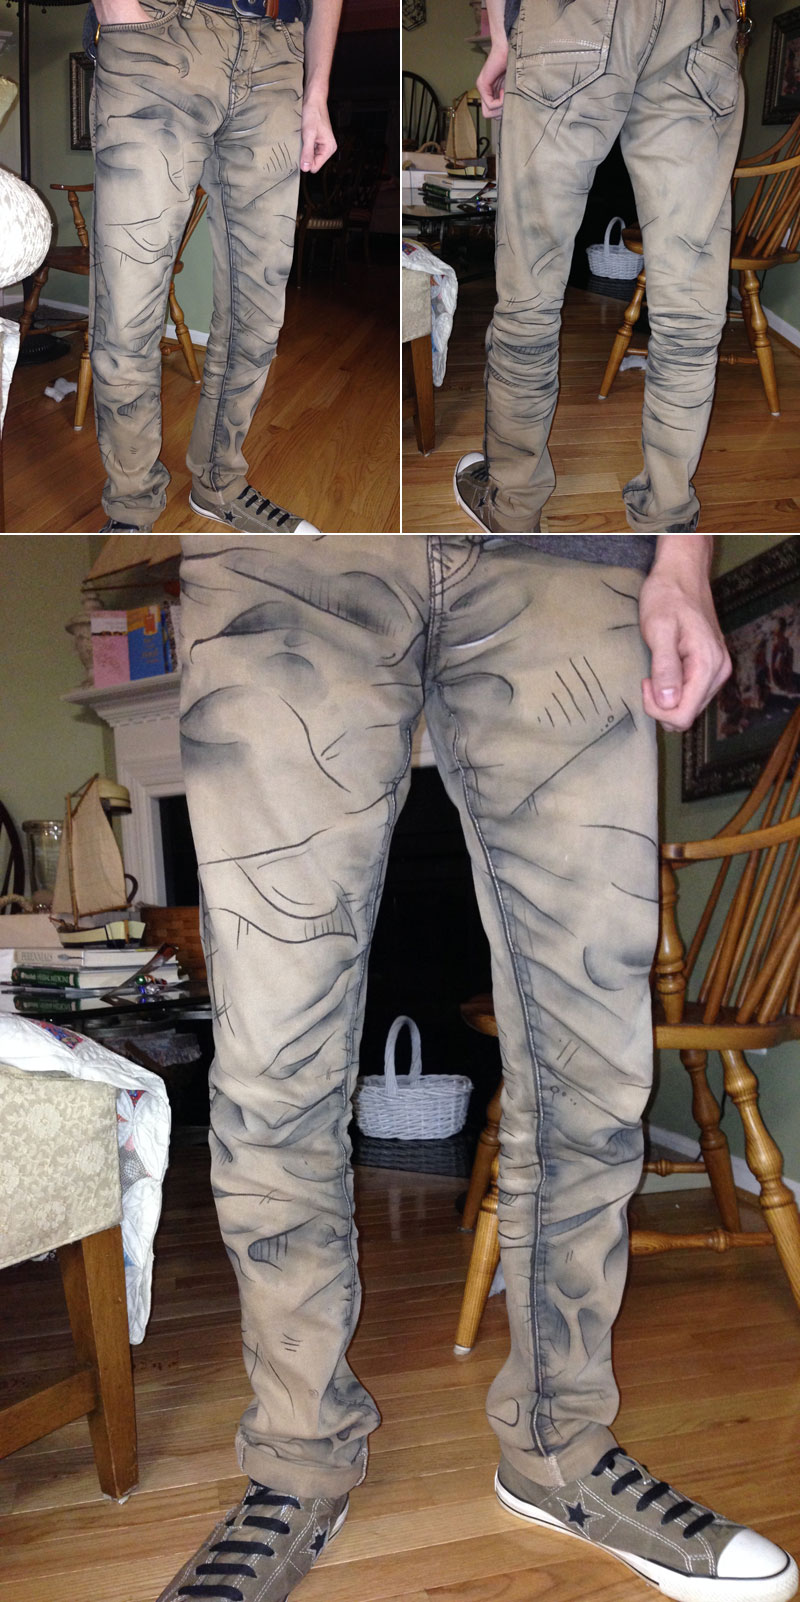 cel shaded pants by labinnak and mangoloo cosplay 1 These Shaded Pants Look Pretty Cool!